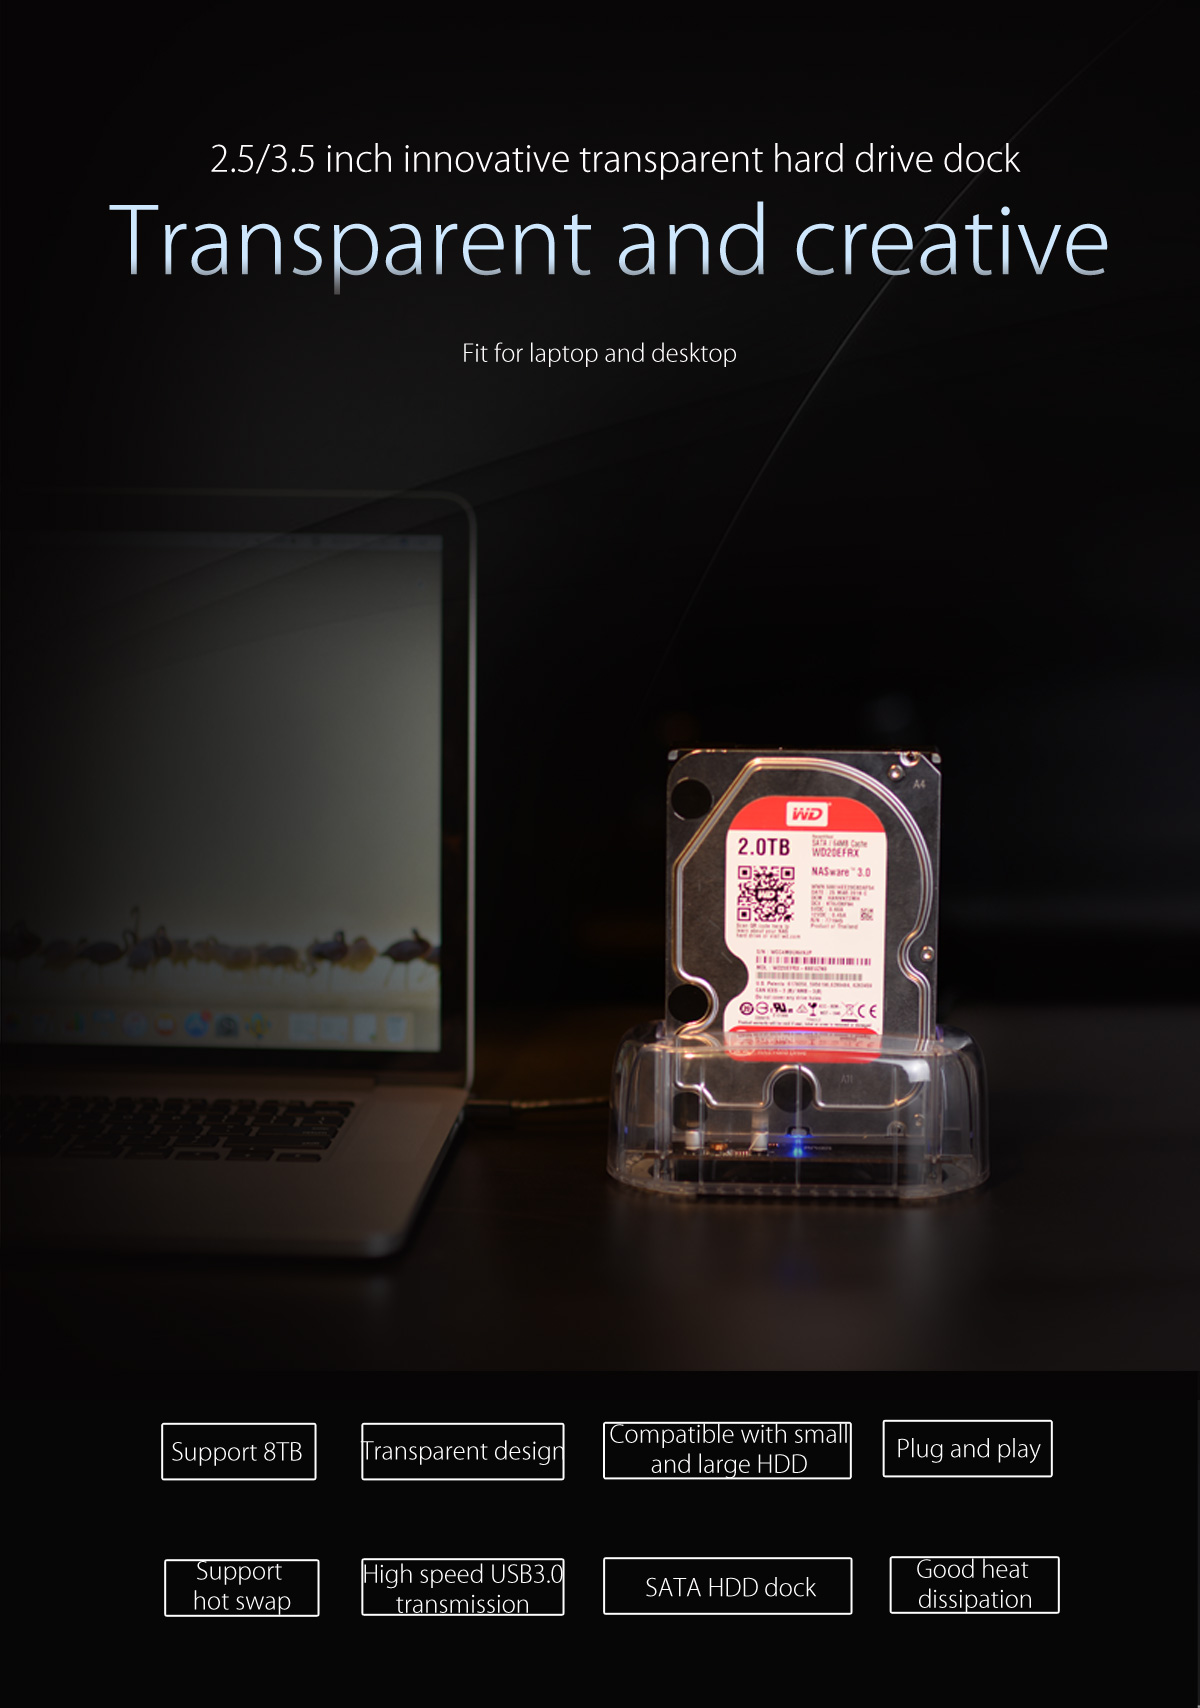 2.5/3.5 inch innovative transparent hard drive dock